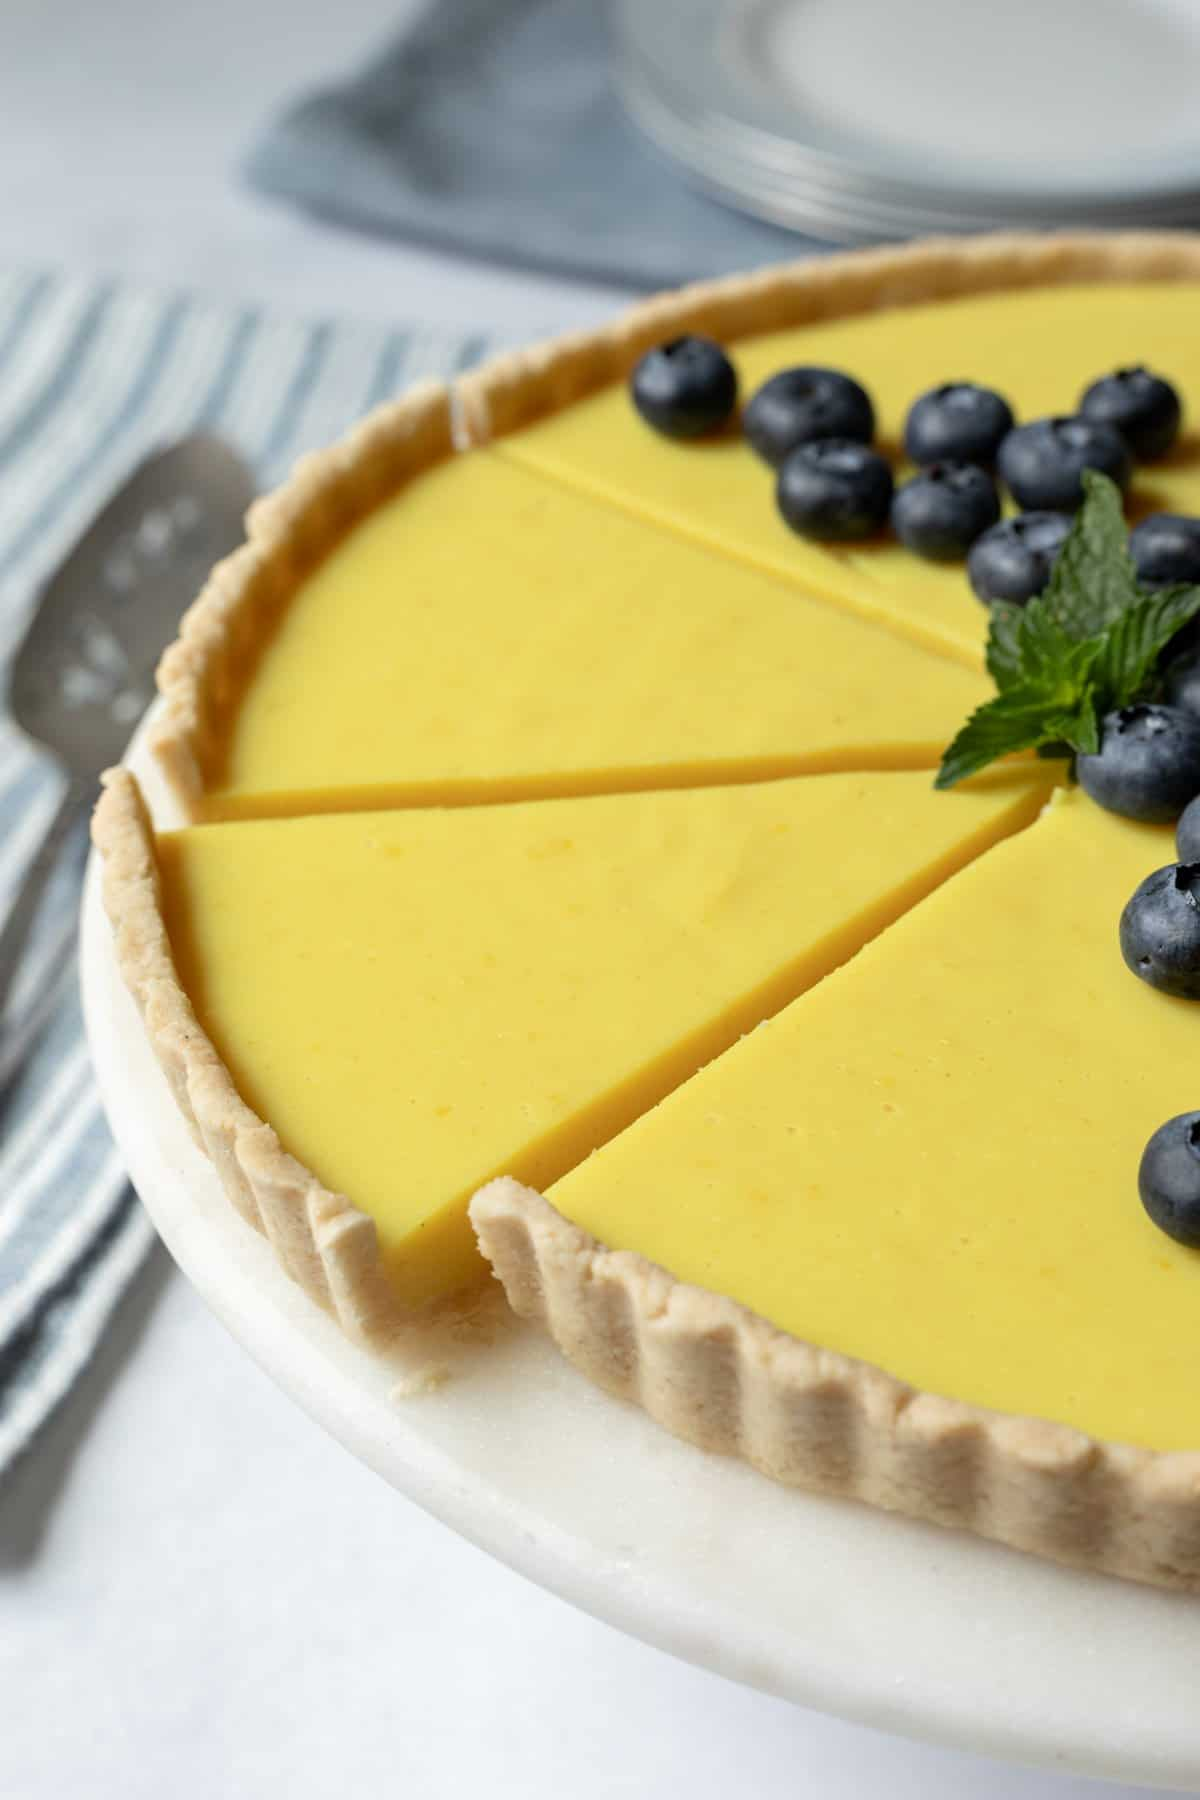 side view showing clean slices cut in the tart.